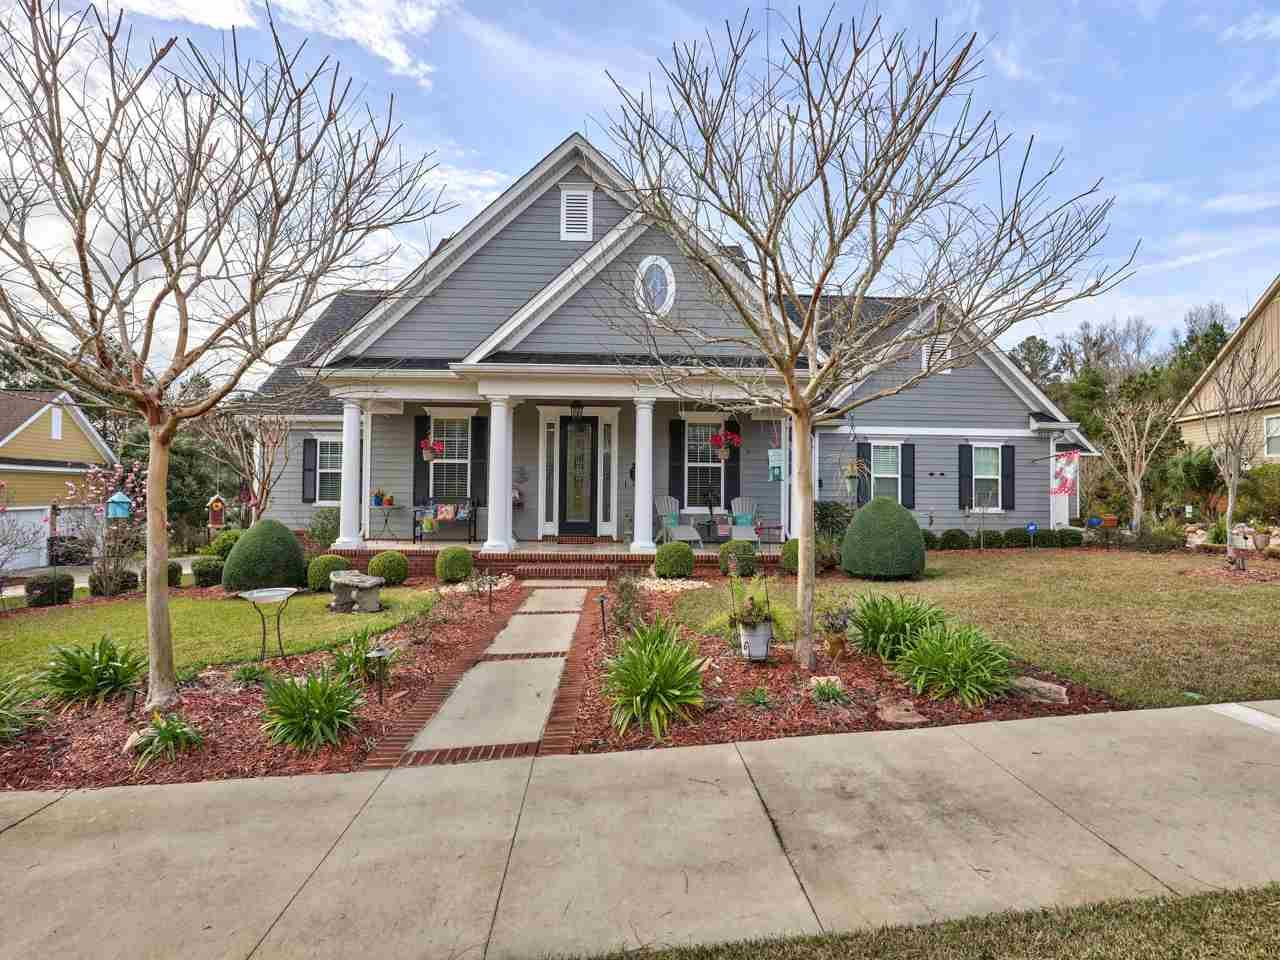 Photo of 3020 Dickinson Drive, TALLAHASSEE, FL 32311 (MLS # 315665)